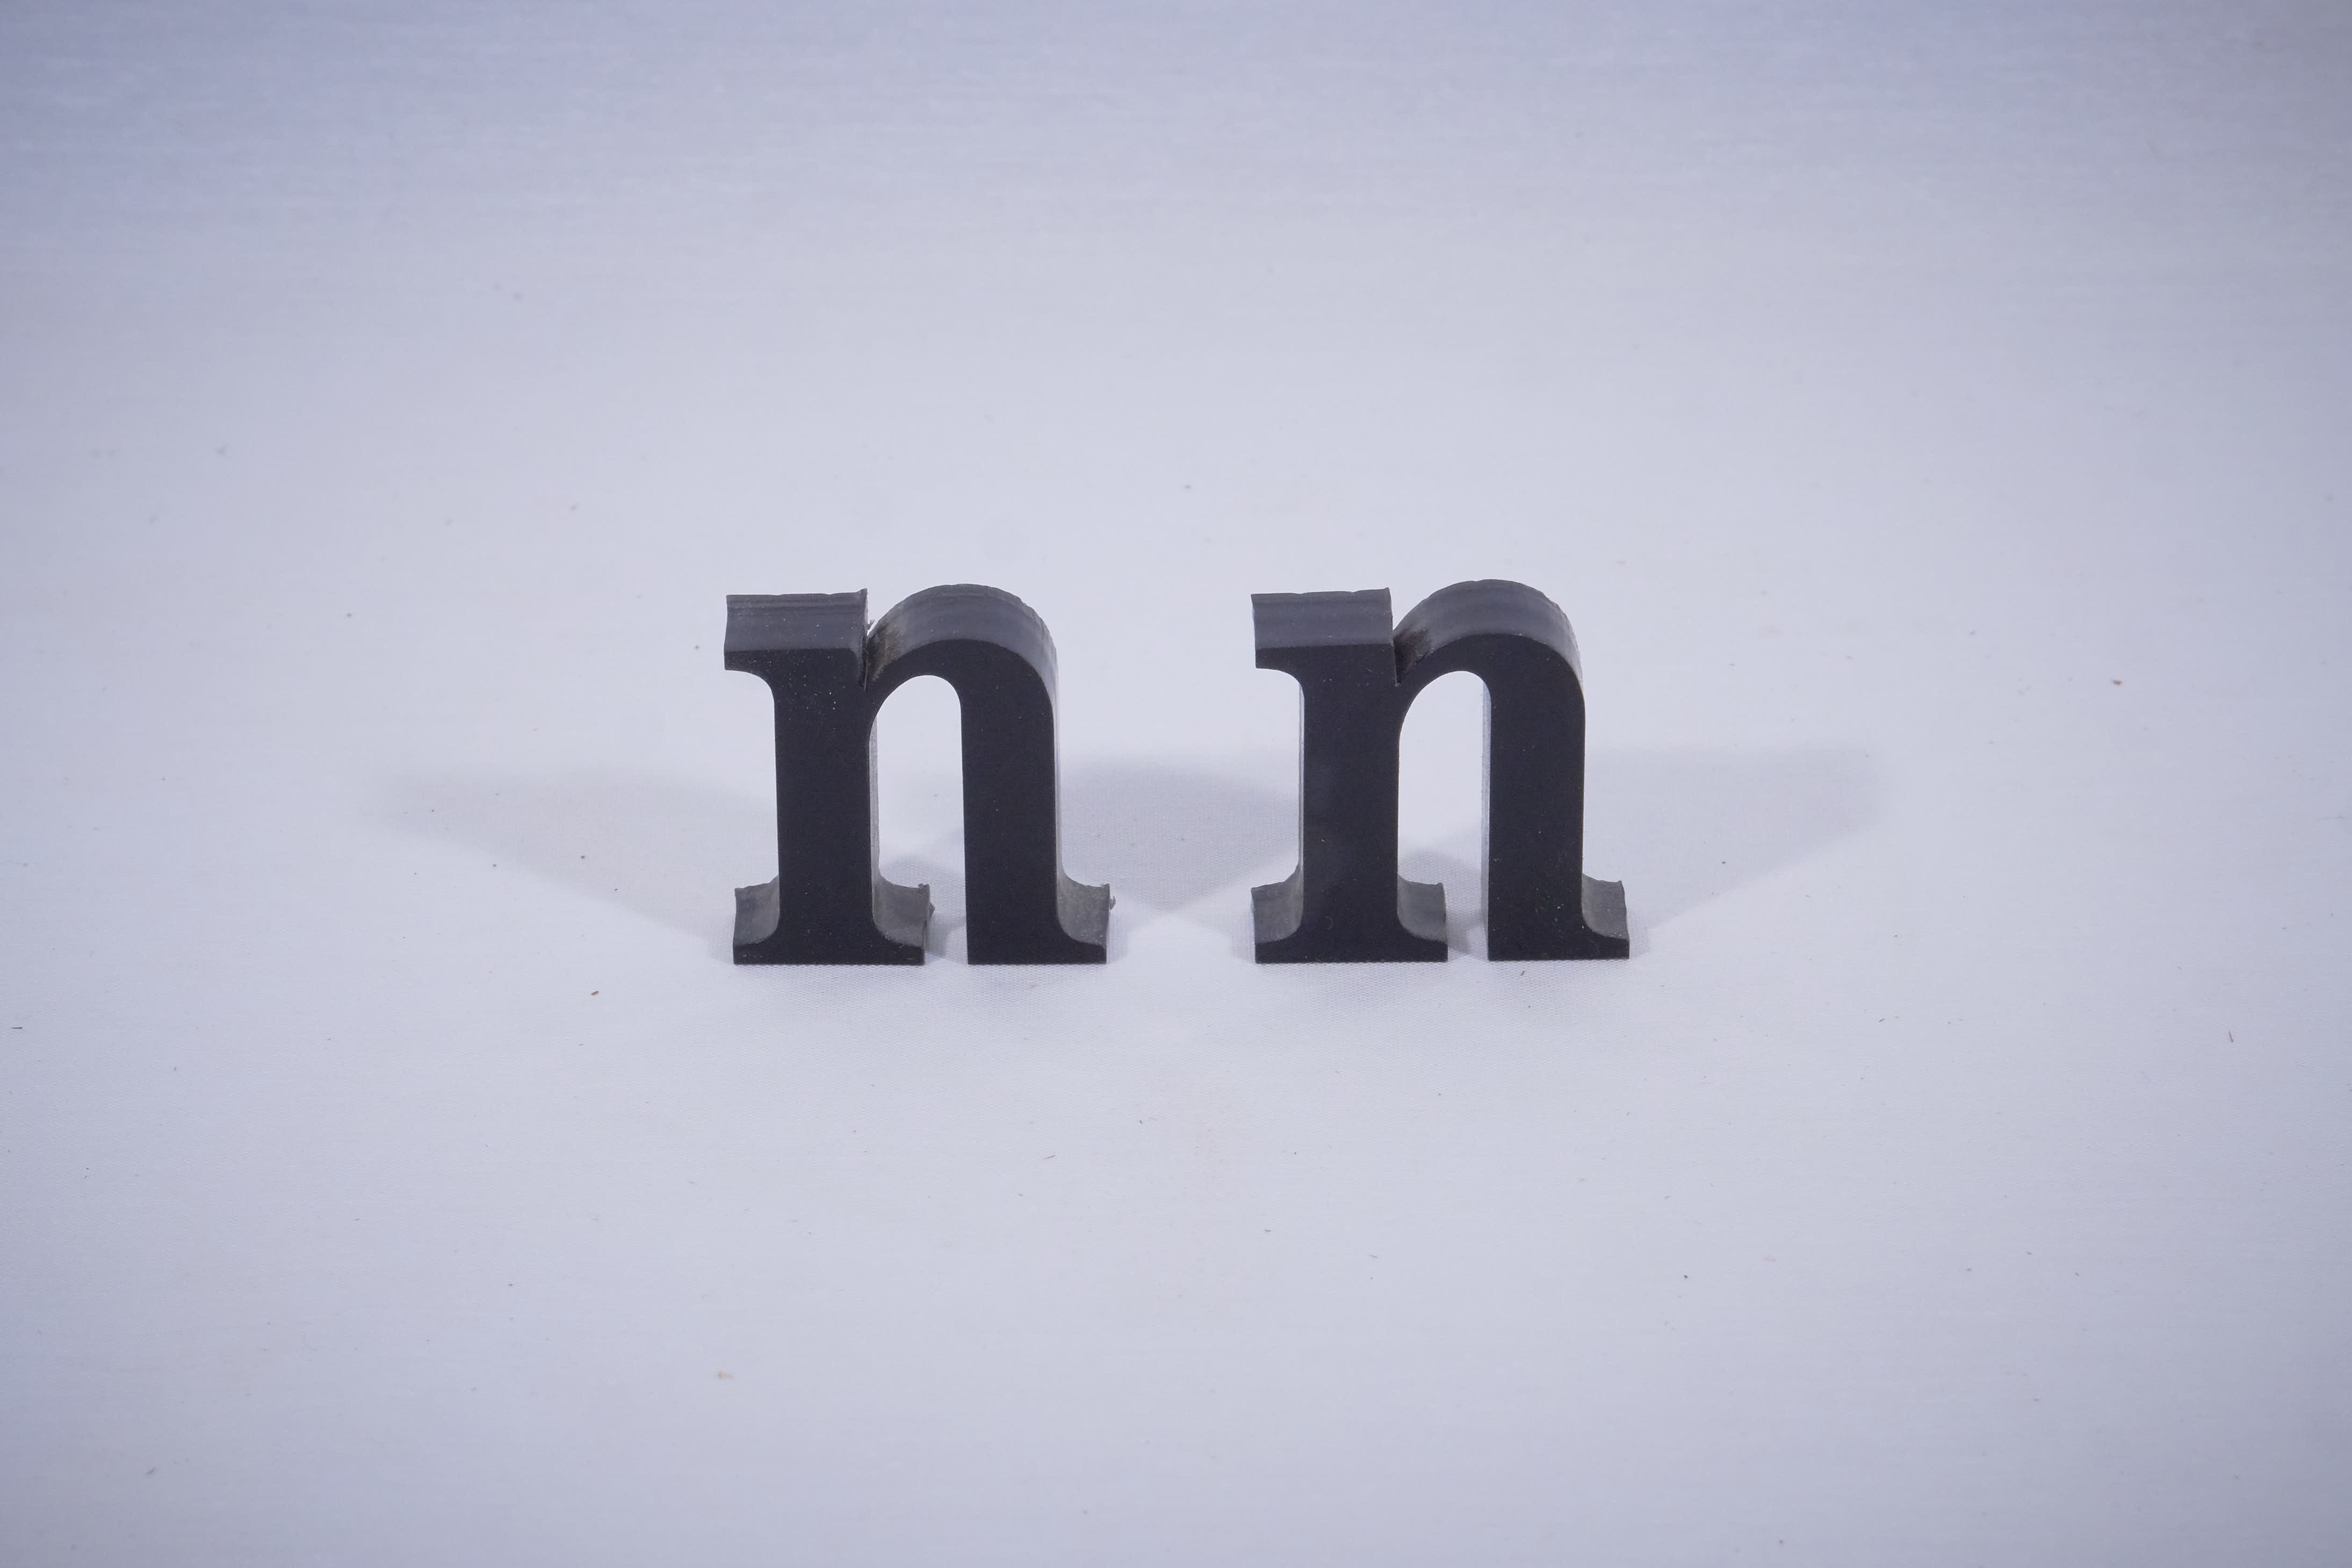 Acrylic letters cut by laser